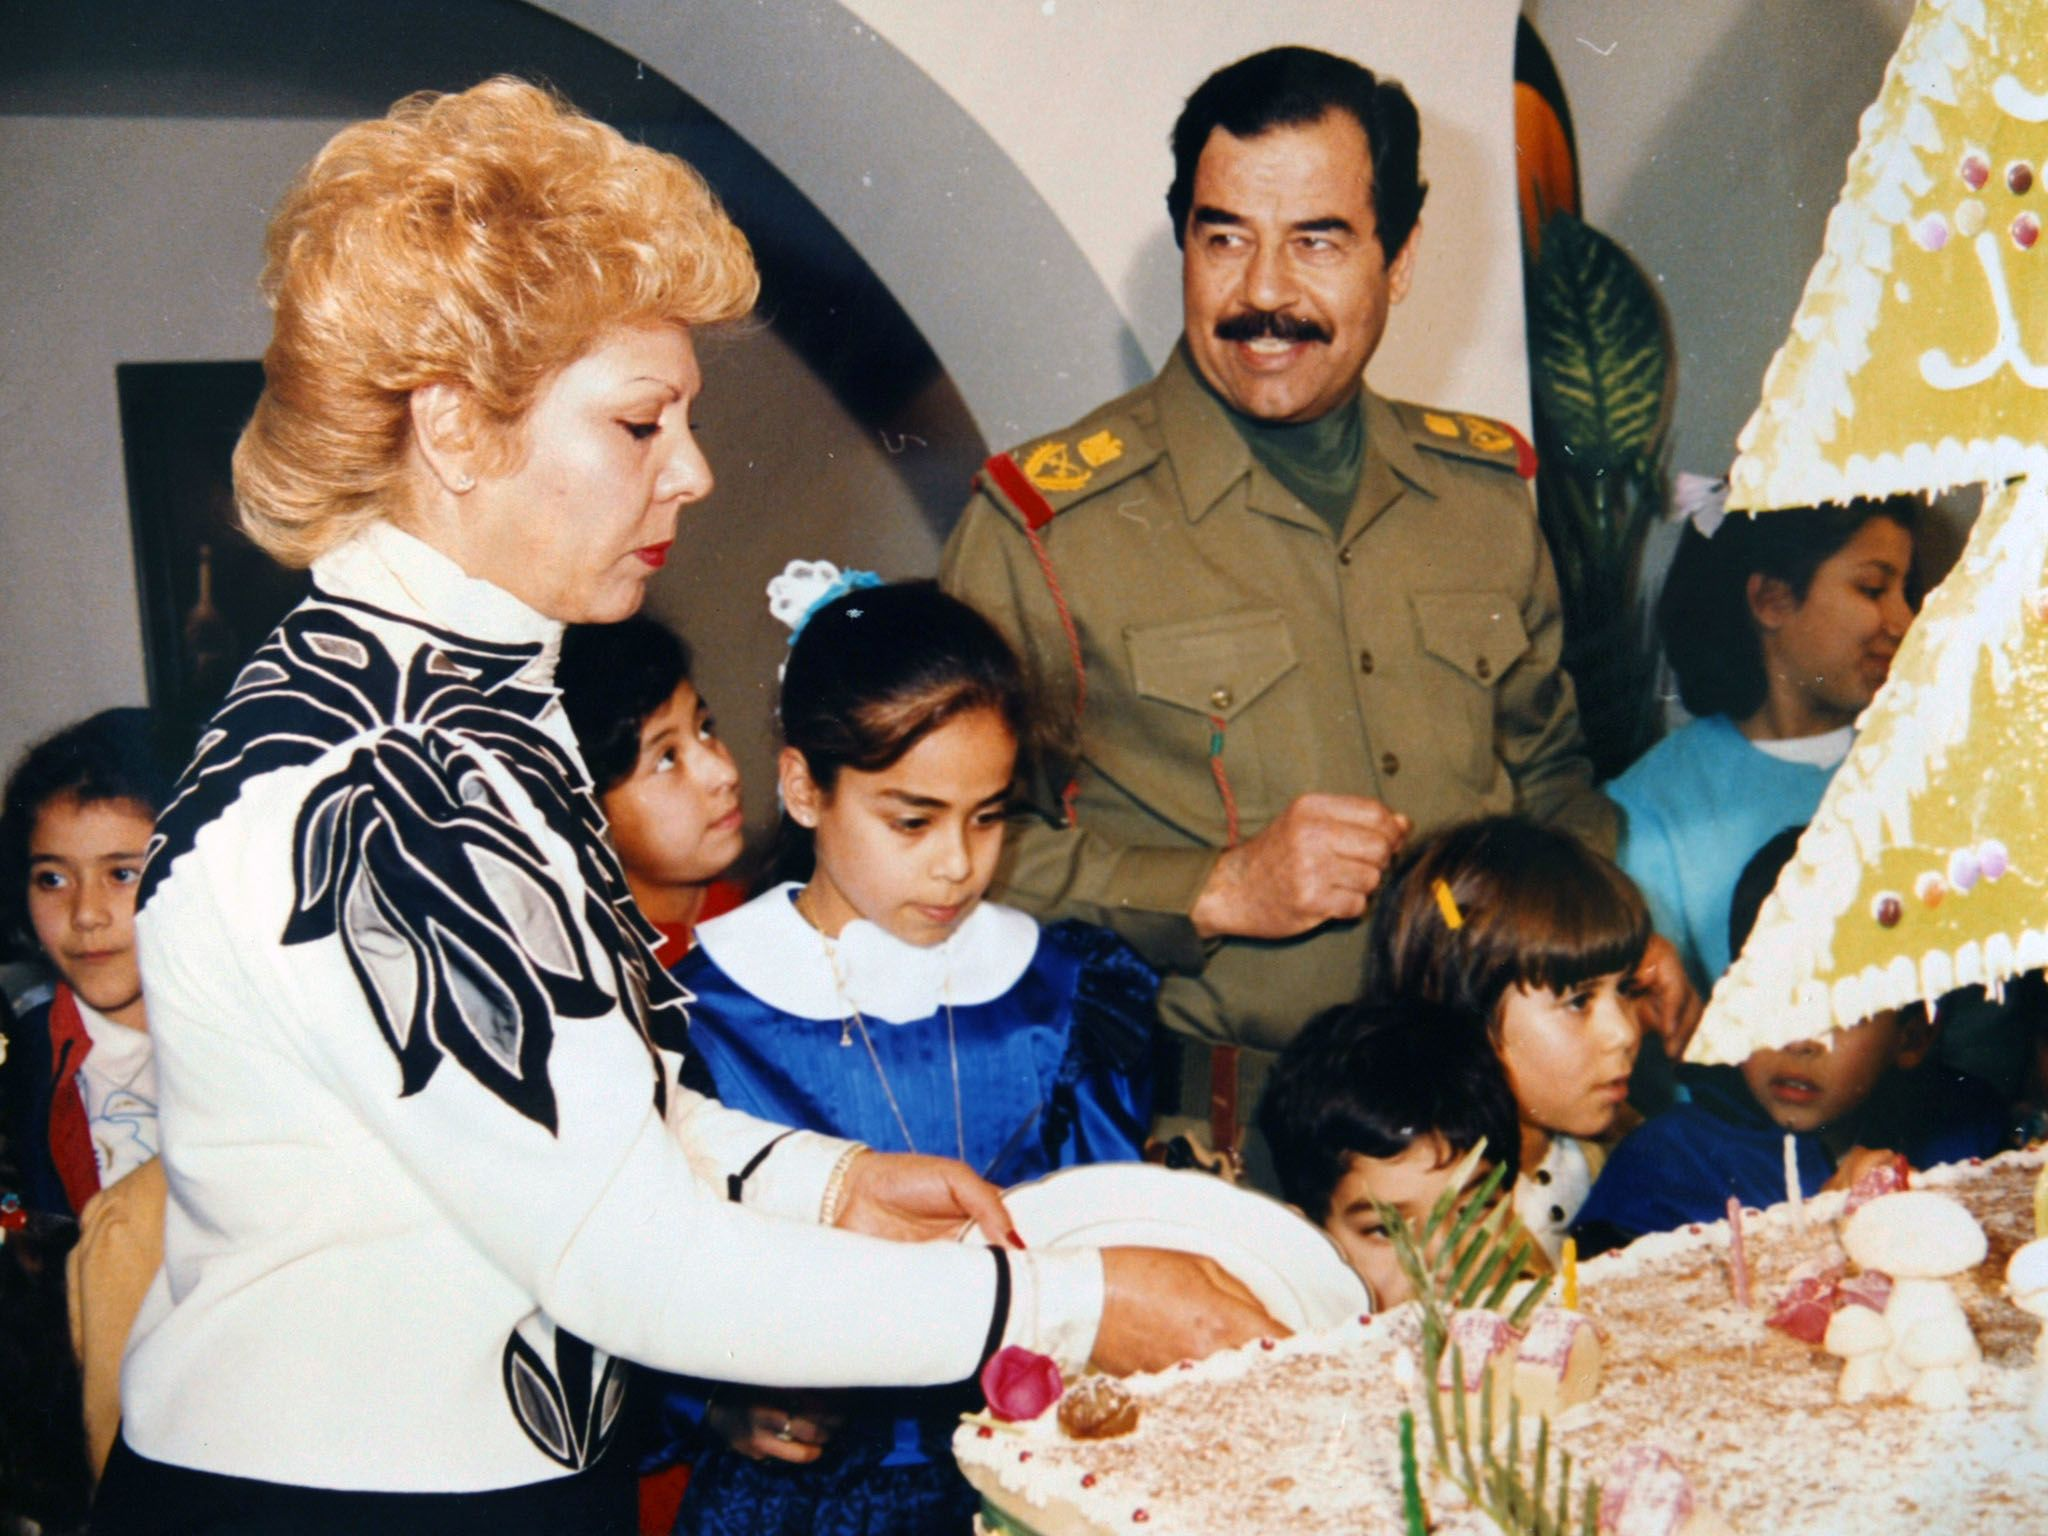 Iraq: Saddam Hussein celebrates the birthday of his daughter Hala as his first wife Sajda Kher... [Photo of the day - September 2016]